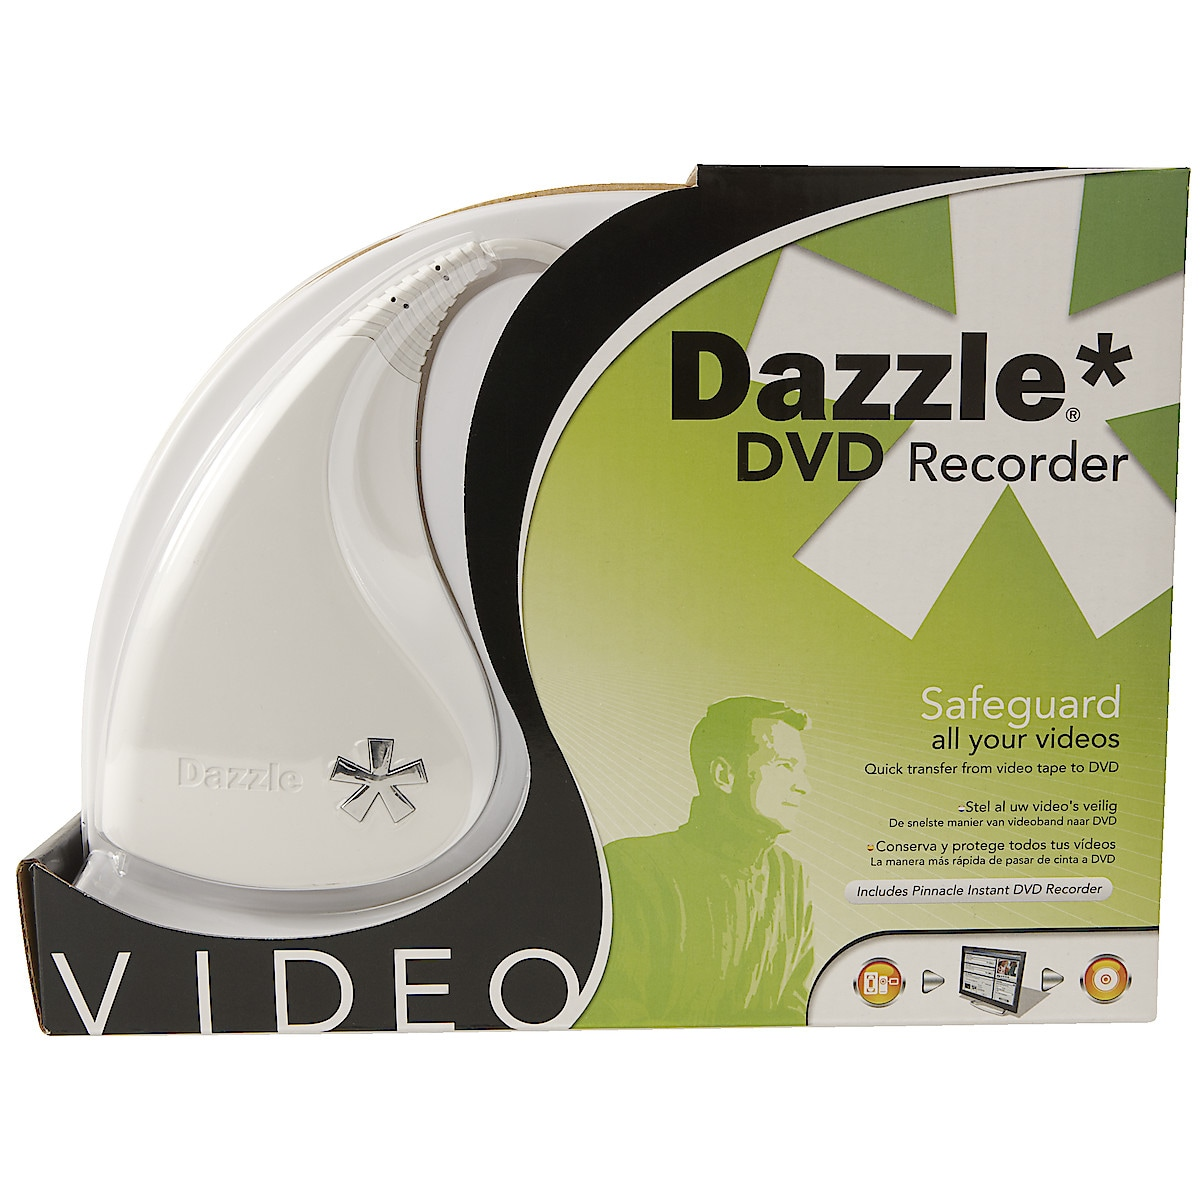 USB 2.0 Video-interface Pinnacle Dazzle DVD Recorder